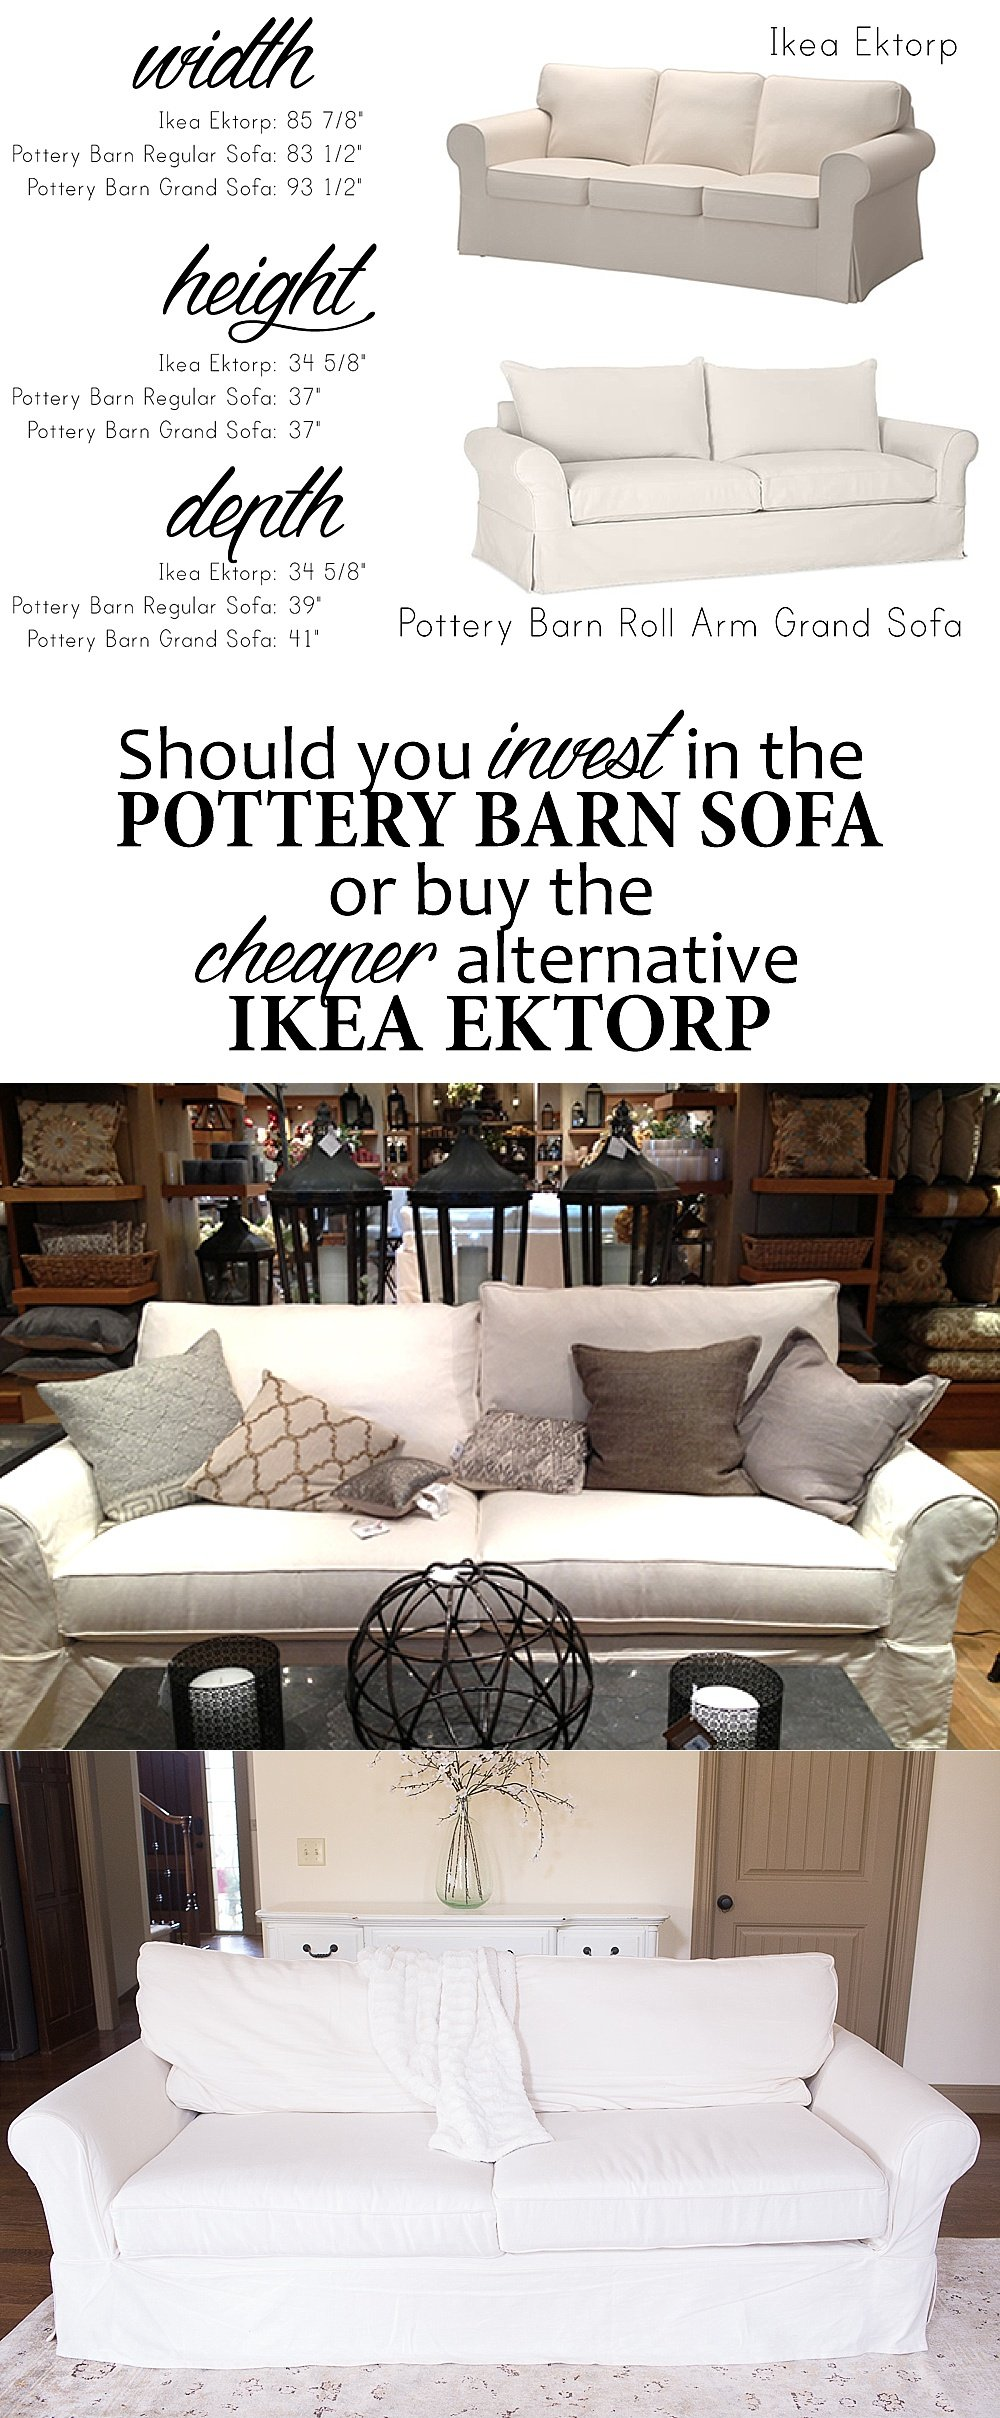 Ikea Versus Pottery Barn Sofa How To Choose A Couch And